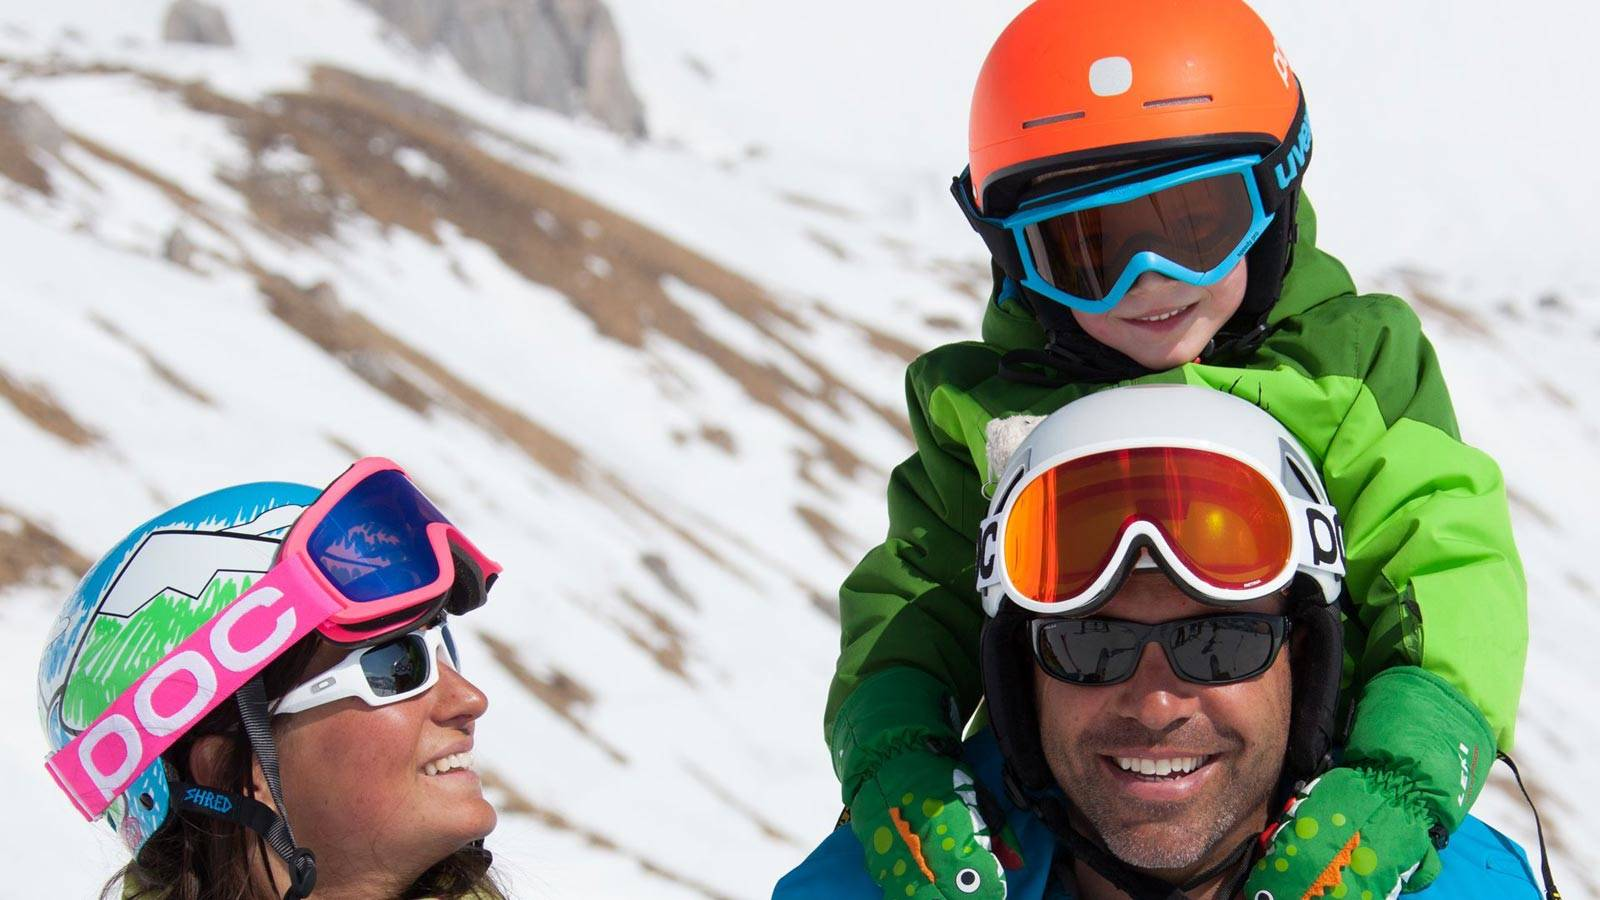 A family enjoys a holiday immersed in the snow at Passo San Pellegrino